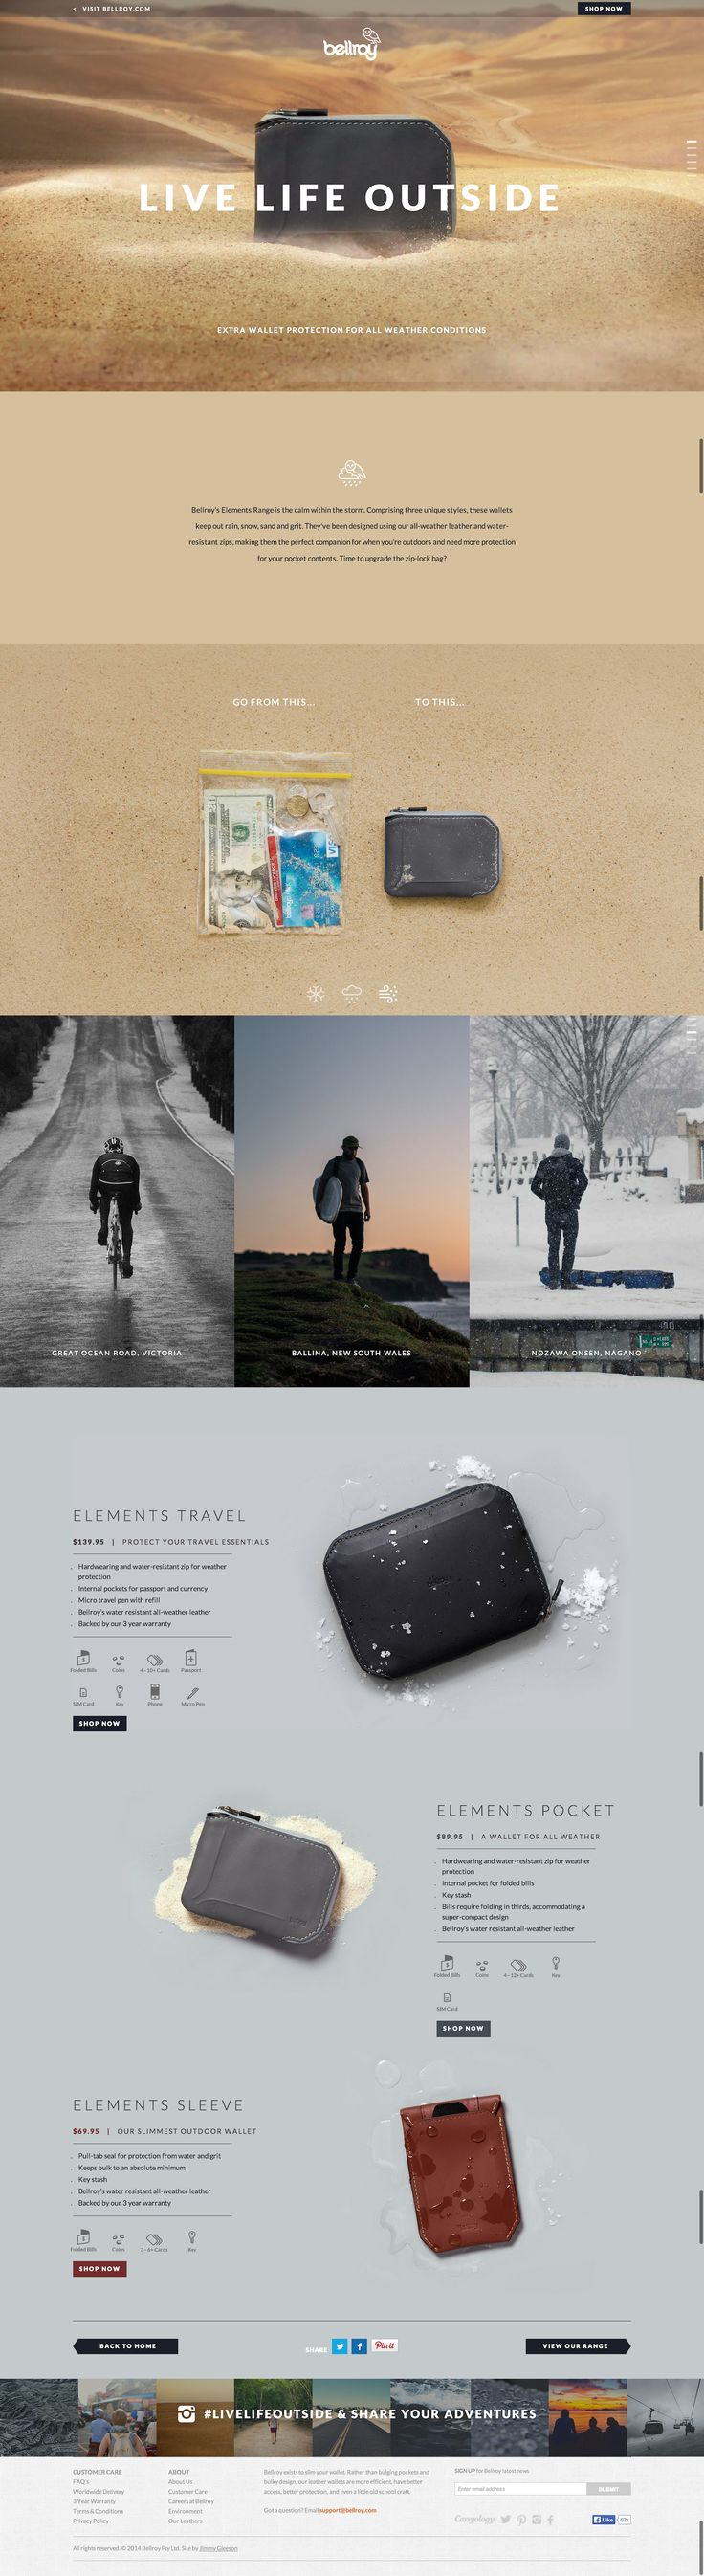 Unique Web Design, Bellroy #WebDesign #Design (http://www.pinterest.com/aldenchong/)